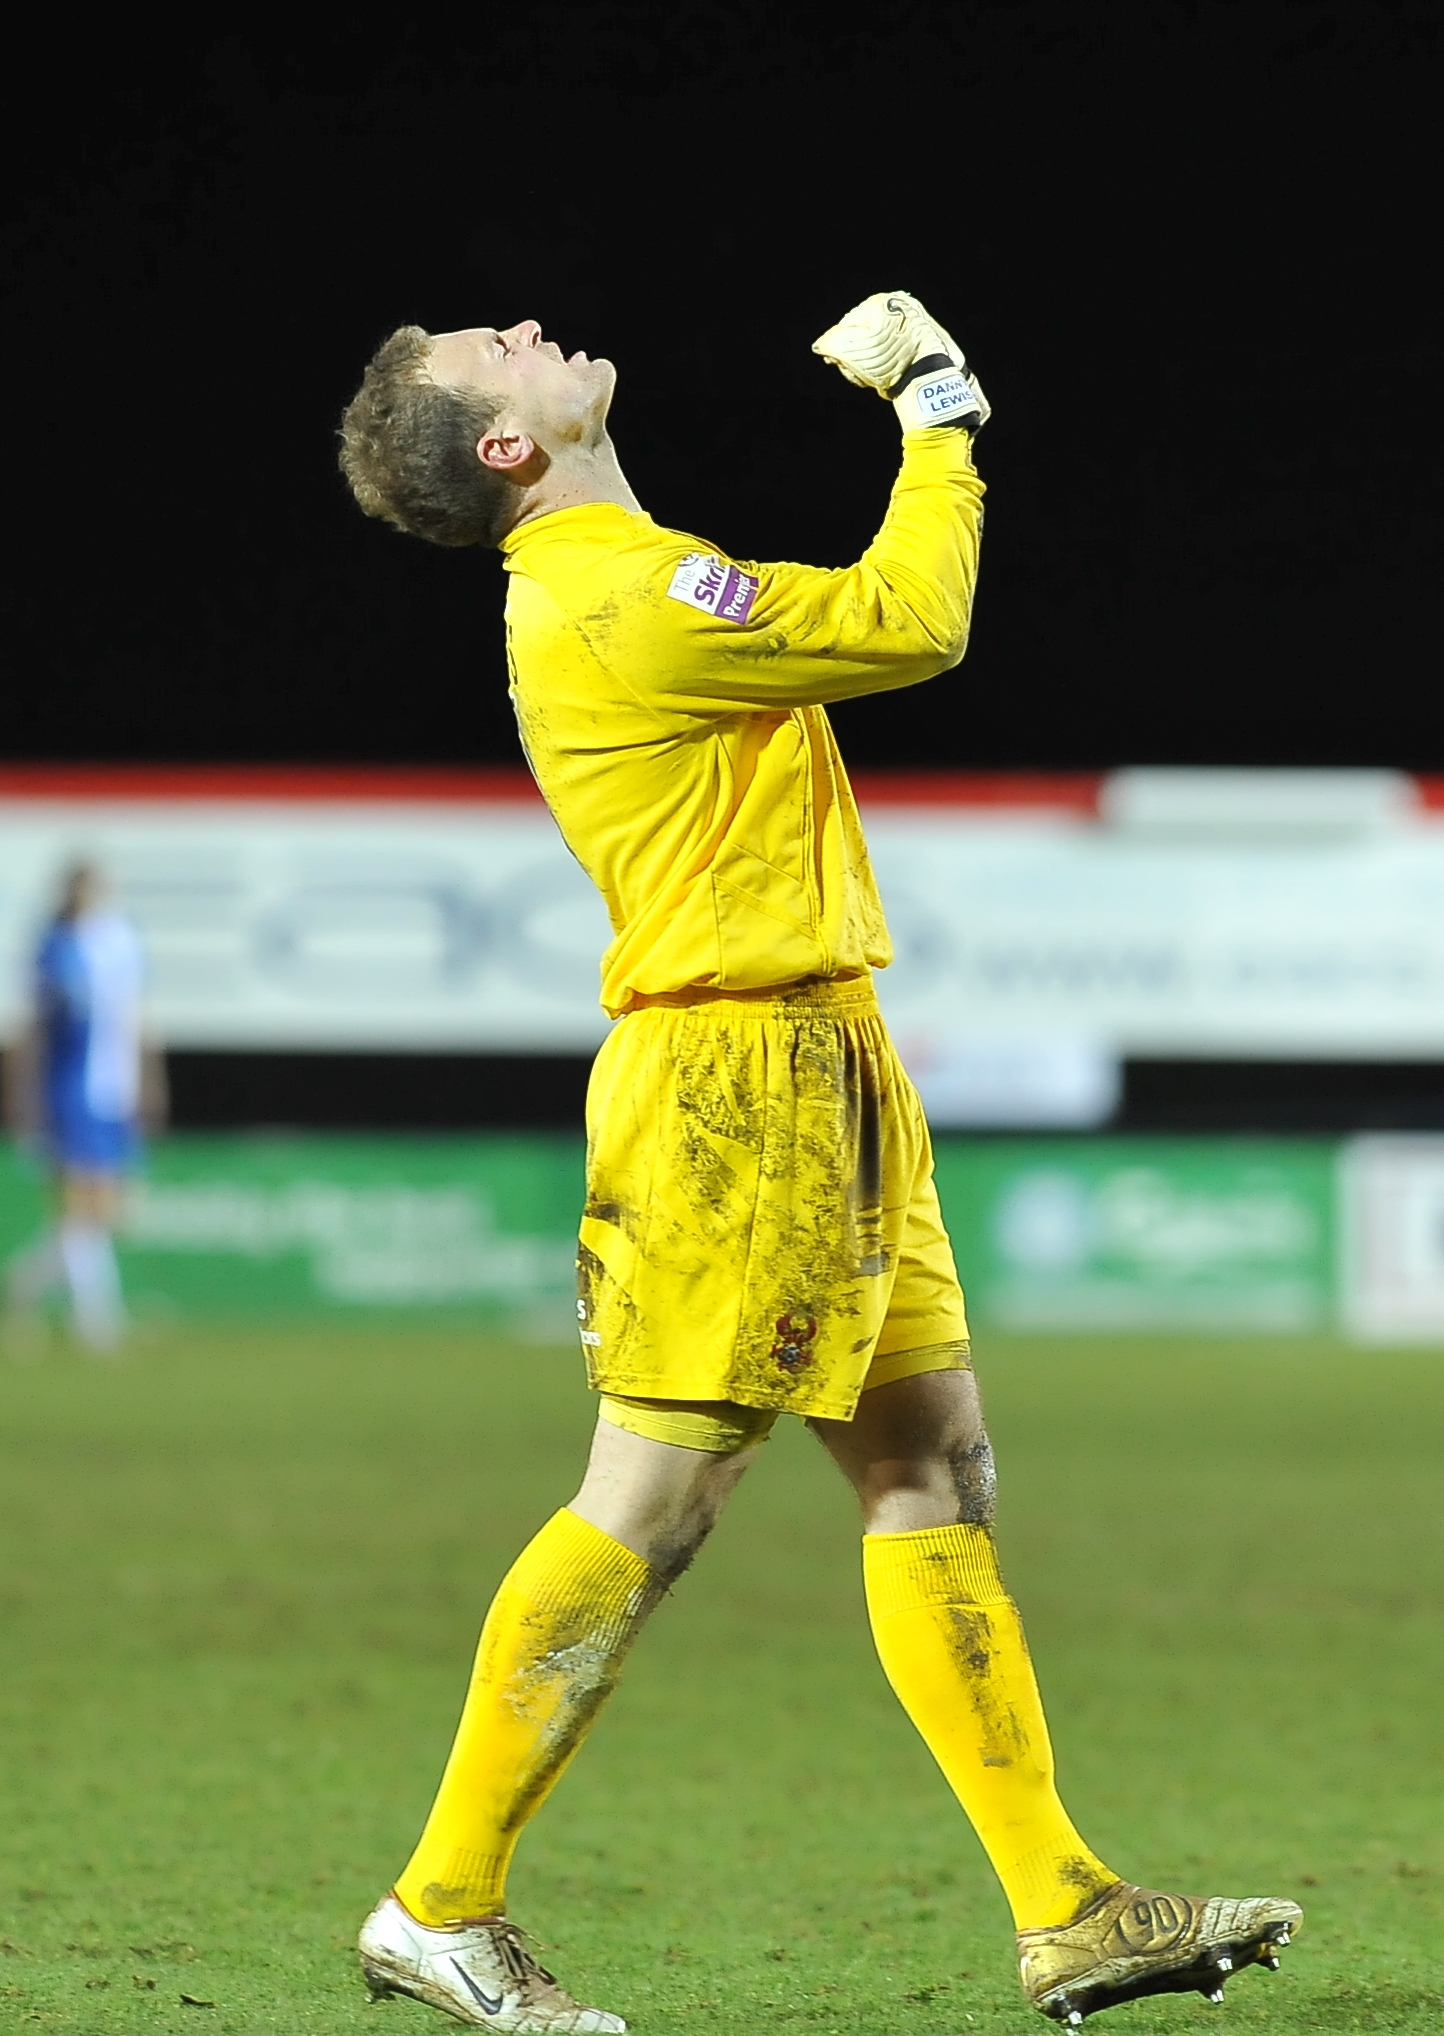 Cup joy: Danny Lewis savours Harriers' superb FA Cup win over The Posh. Picture: DAVID LOWNDES